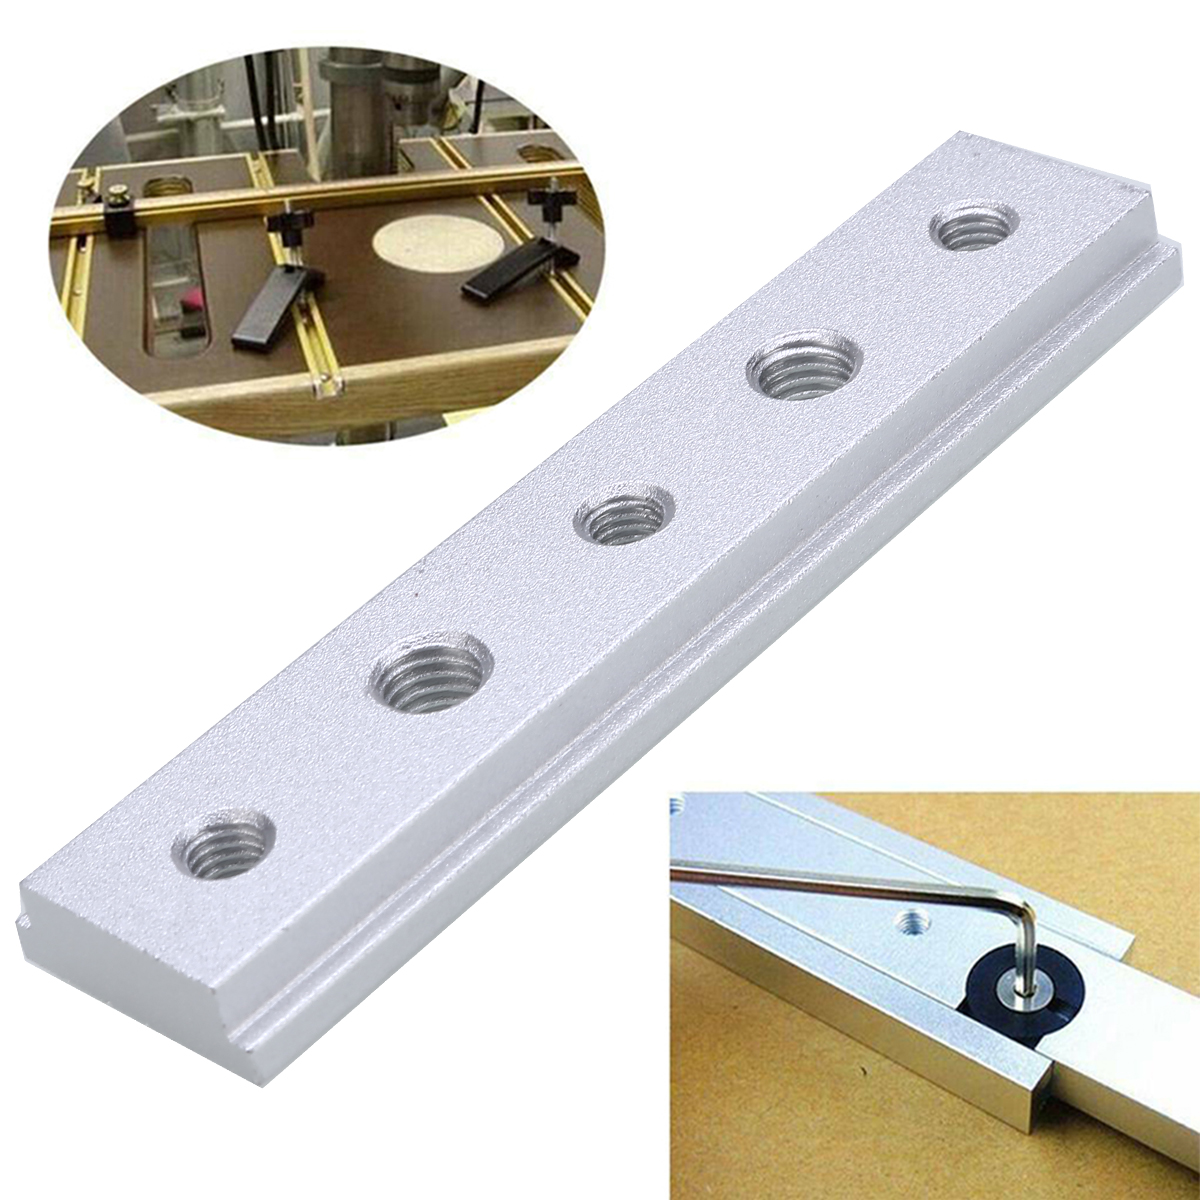 1pcs T Slot Track Aluminum Slot Miter Track Jig Fixture For Router Table Bandsaws Woodworking Tool 100mm Length